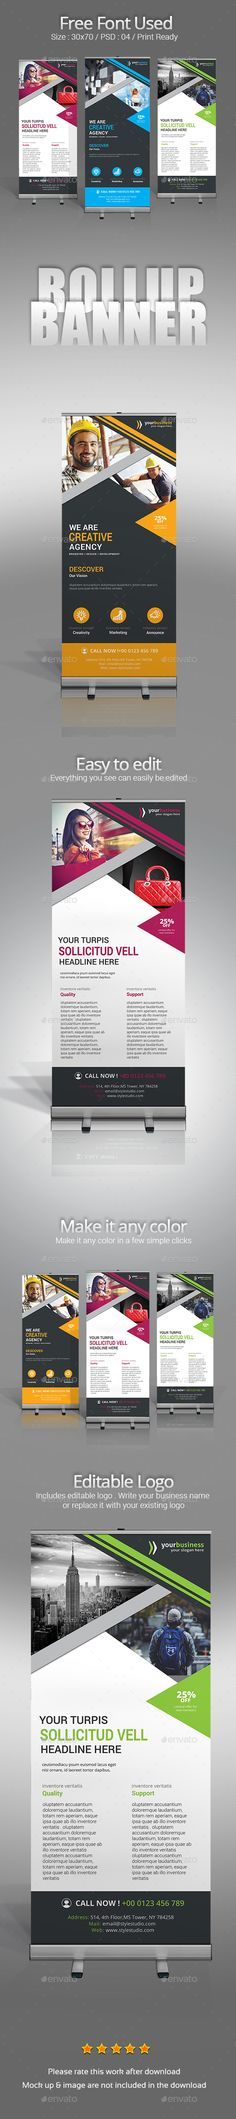 Real estate business roll up banners banners real estate business real estate business roll up banners banners real estate business and banner template spiritdancerdesigns Image collections